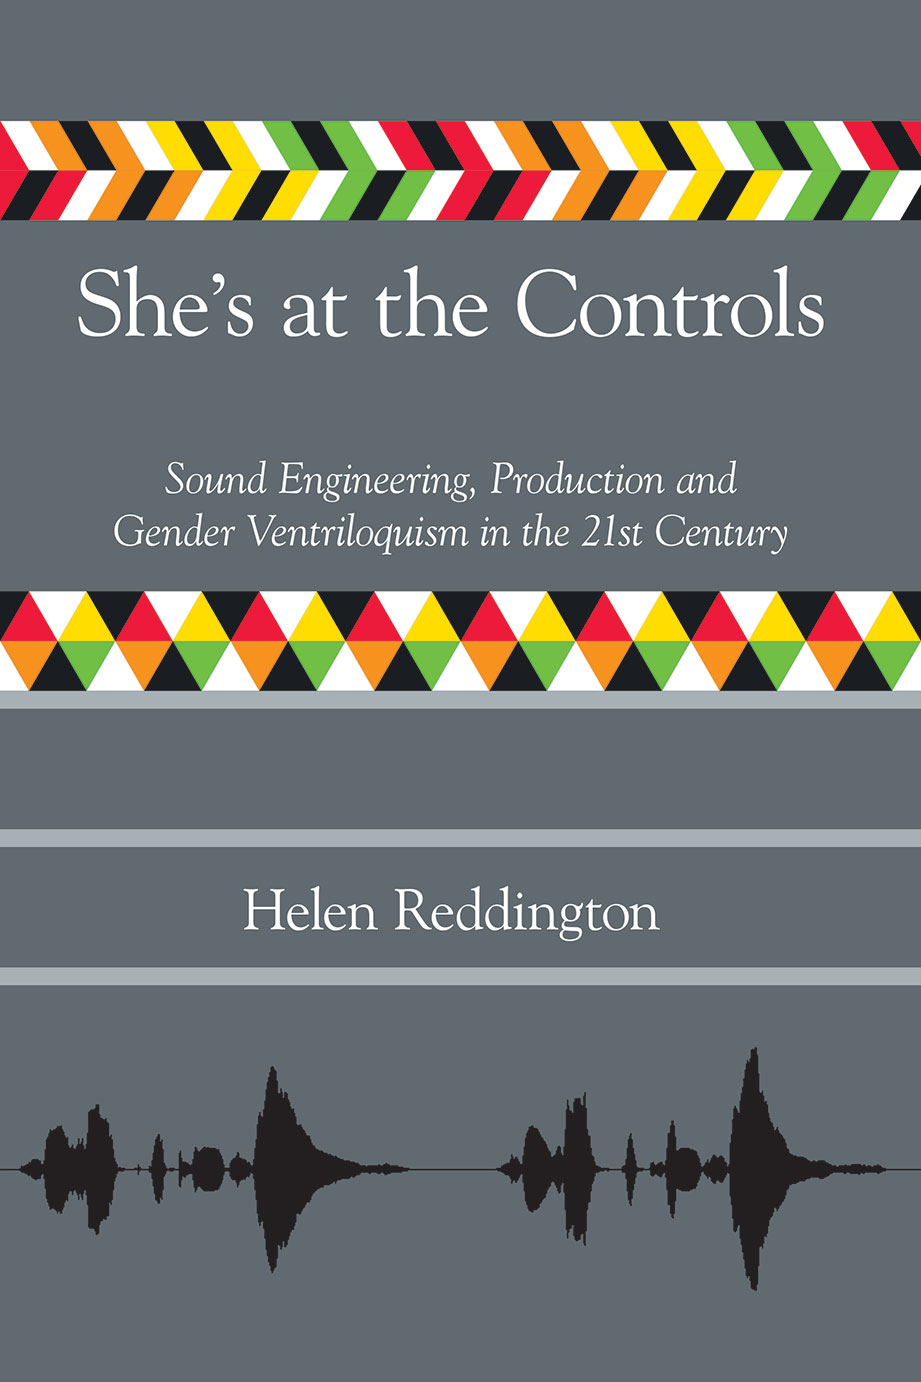 She's at the Controls - Sound Engineering, Production and Gender Ventriloquism in the 21st Century - Helen Reddington